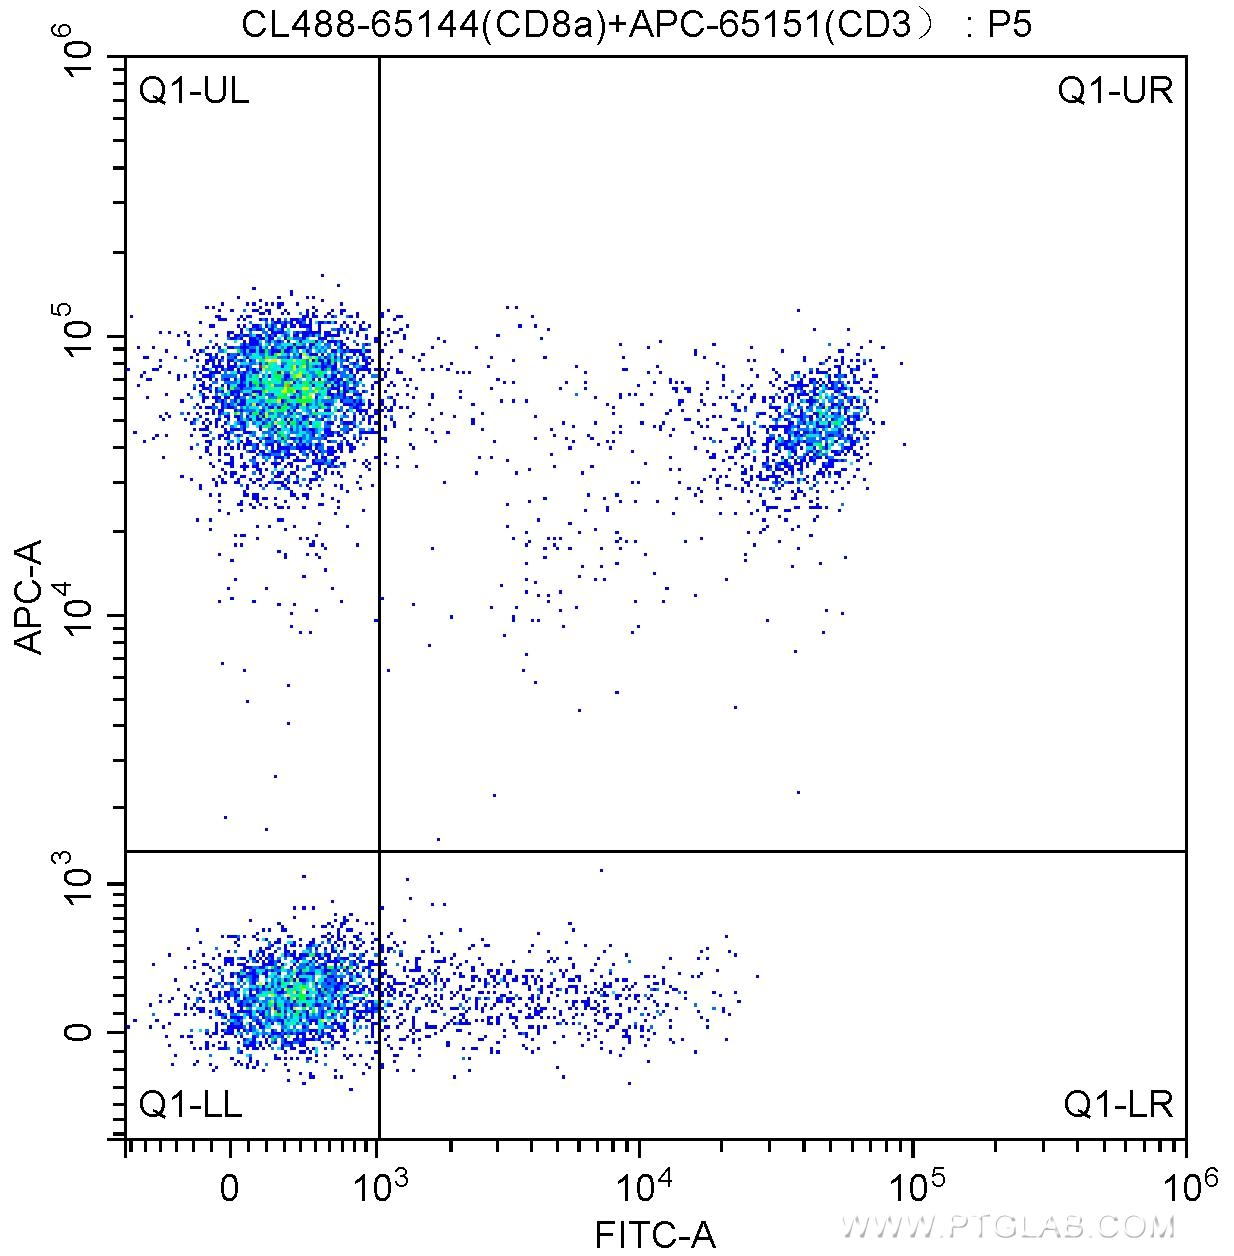 100 ul human peripheral blood were surface stained with APC Anti-Human CD3 (APC-65151, Clone: UCHT1) and 5.00 ul CoraLite®488-conjugated Anti-Human CD8a (CL488-65144, Clone: RPA-T8). Lymphocytes were gated for analysis. Cells were not fixed.